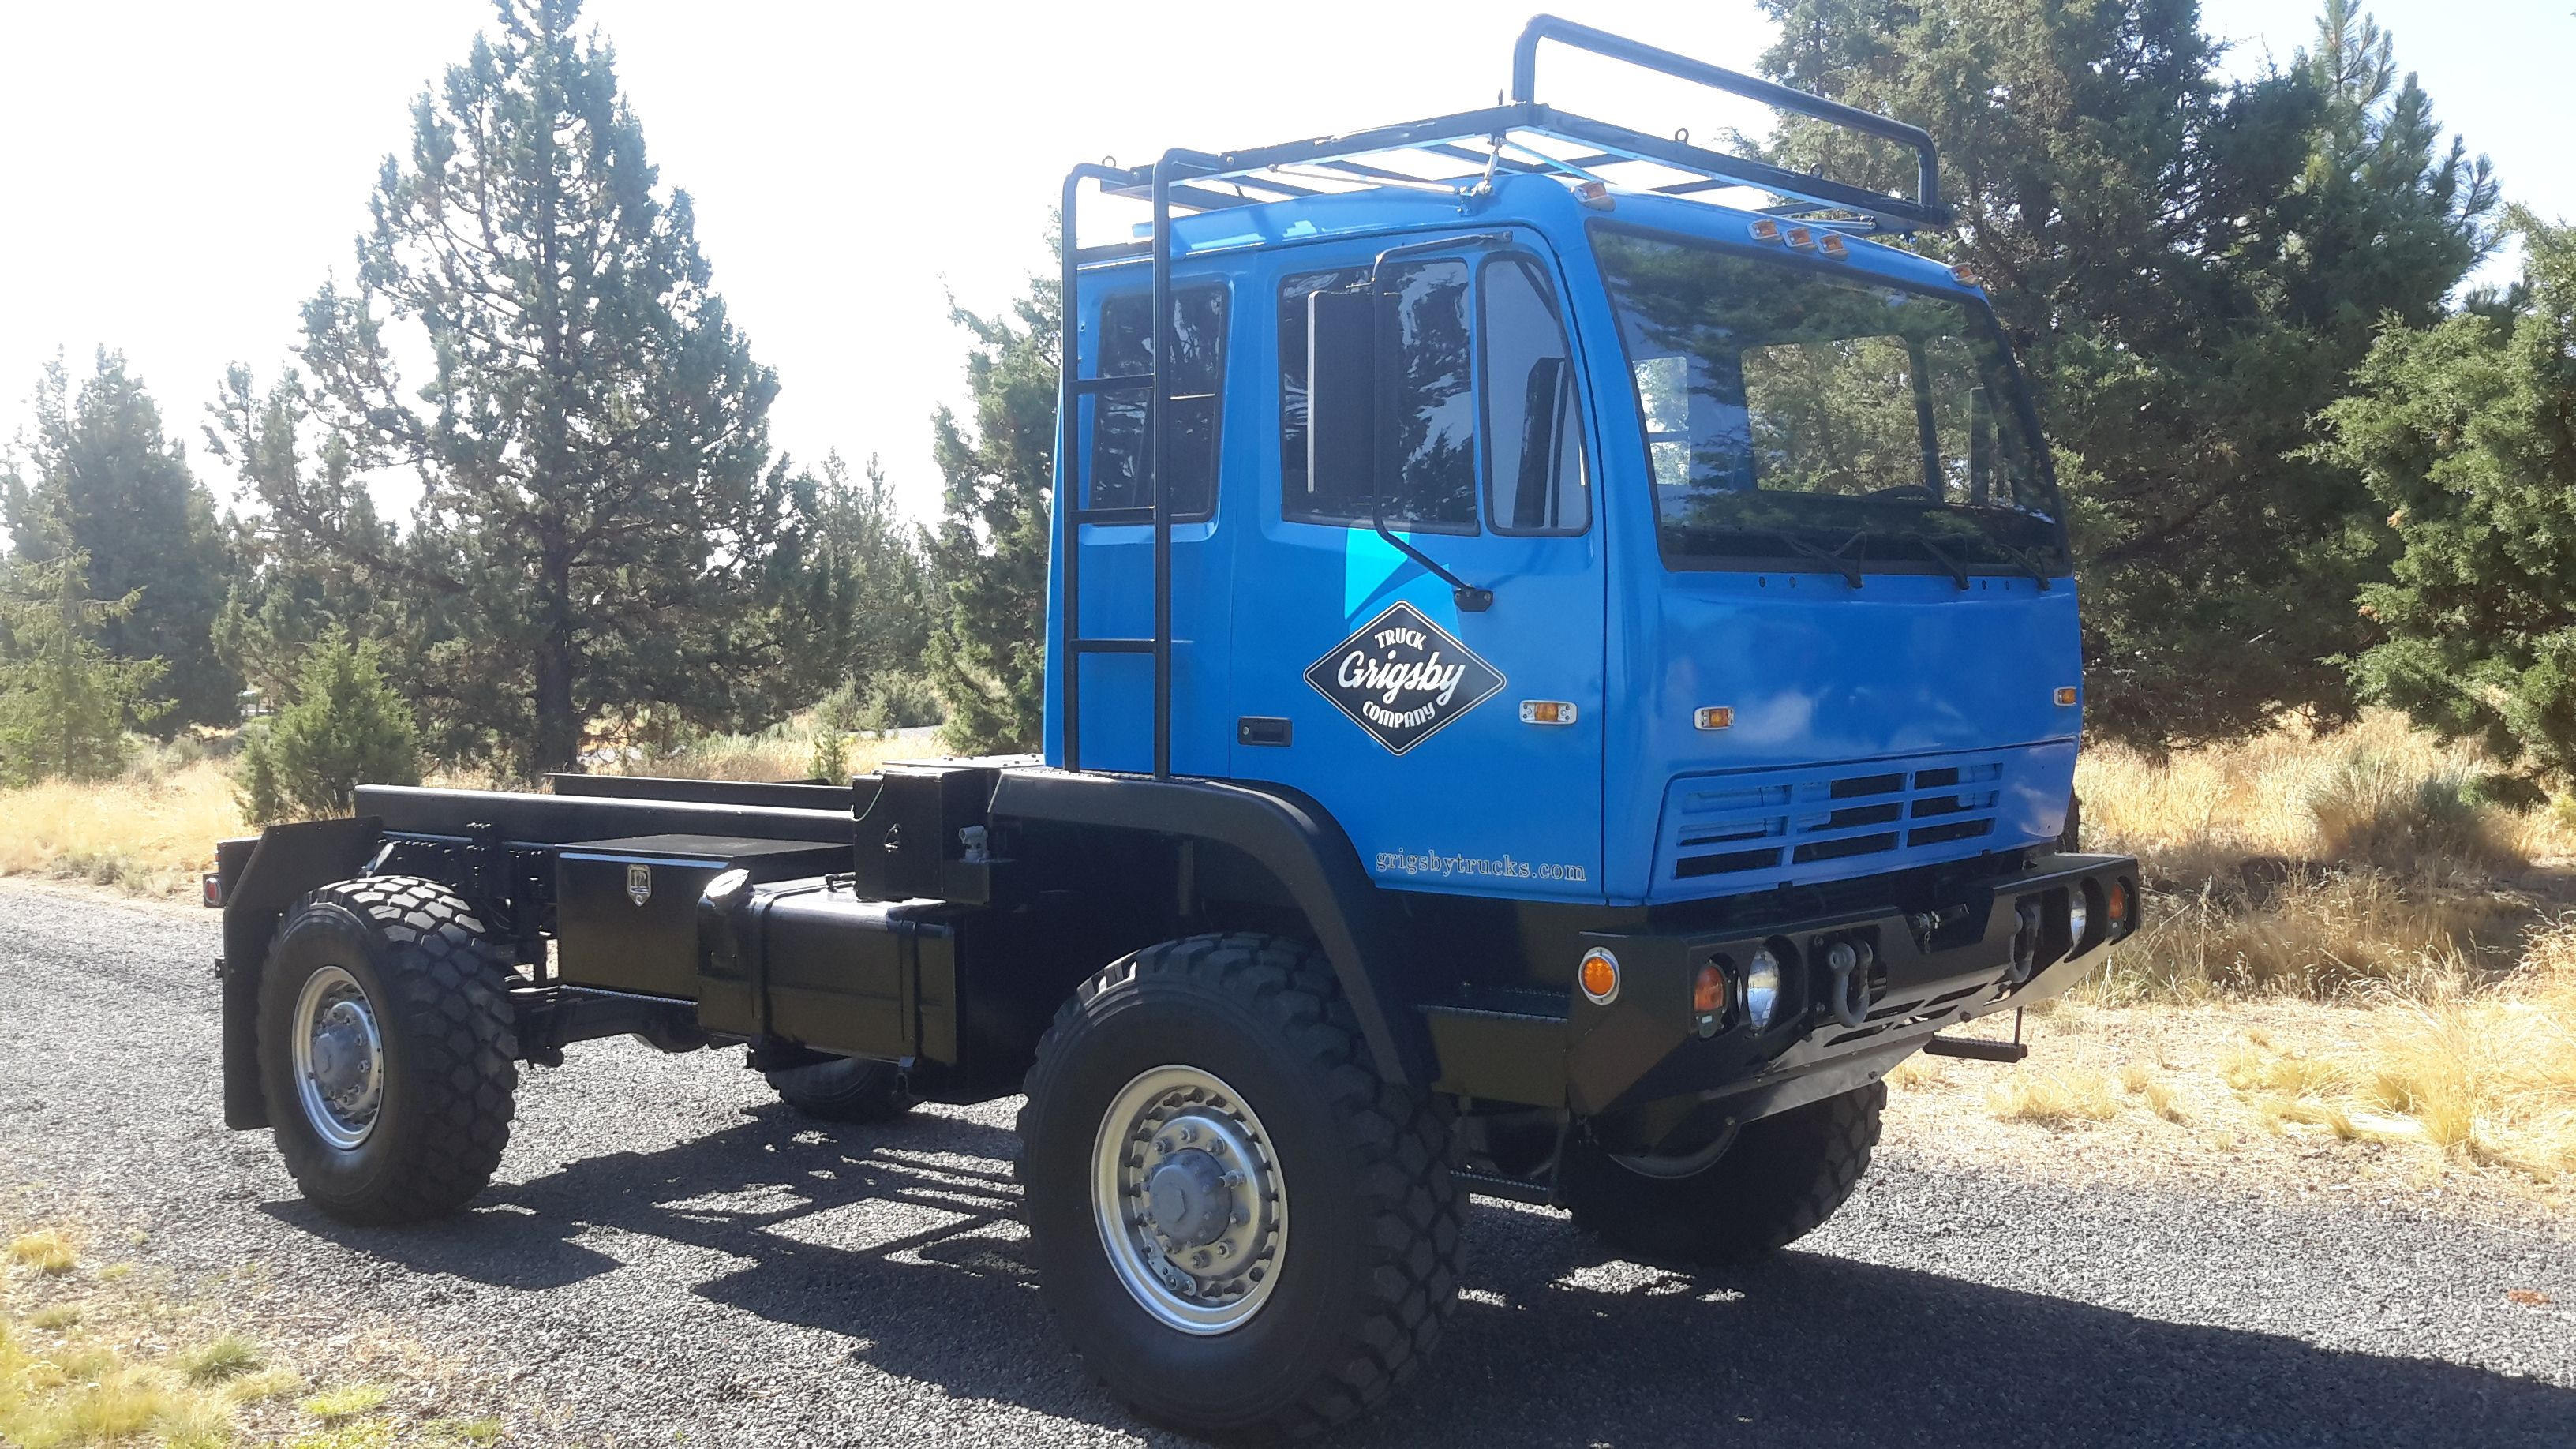 M1078 LMTV | buses 4 sale | Trucks, Vehicles, Expedition truck